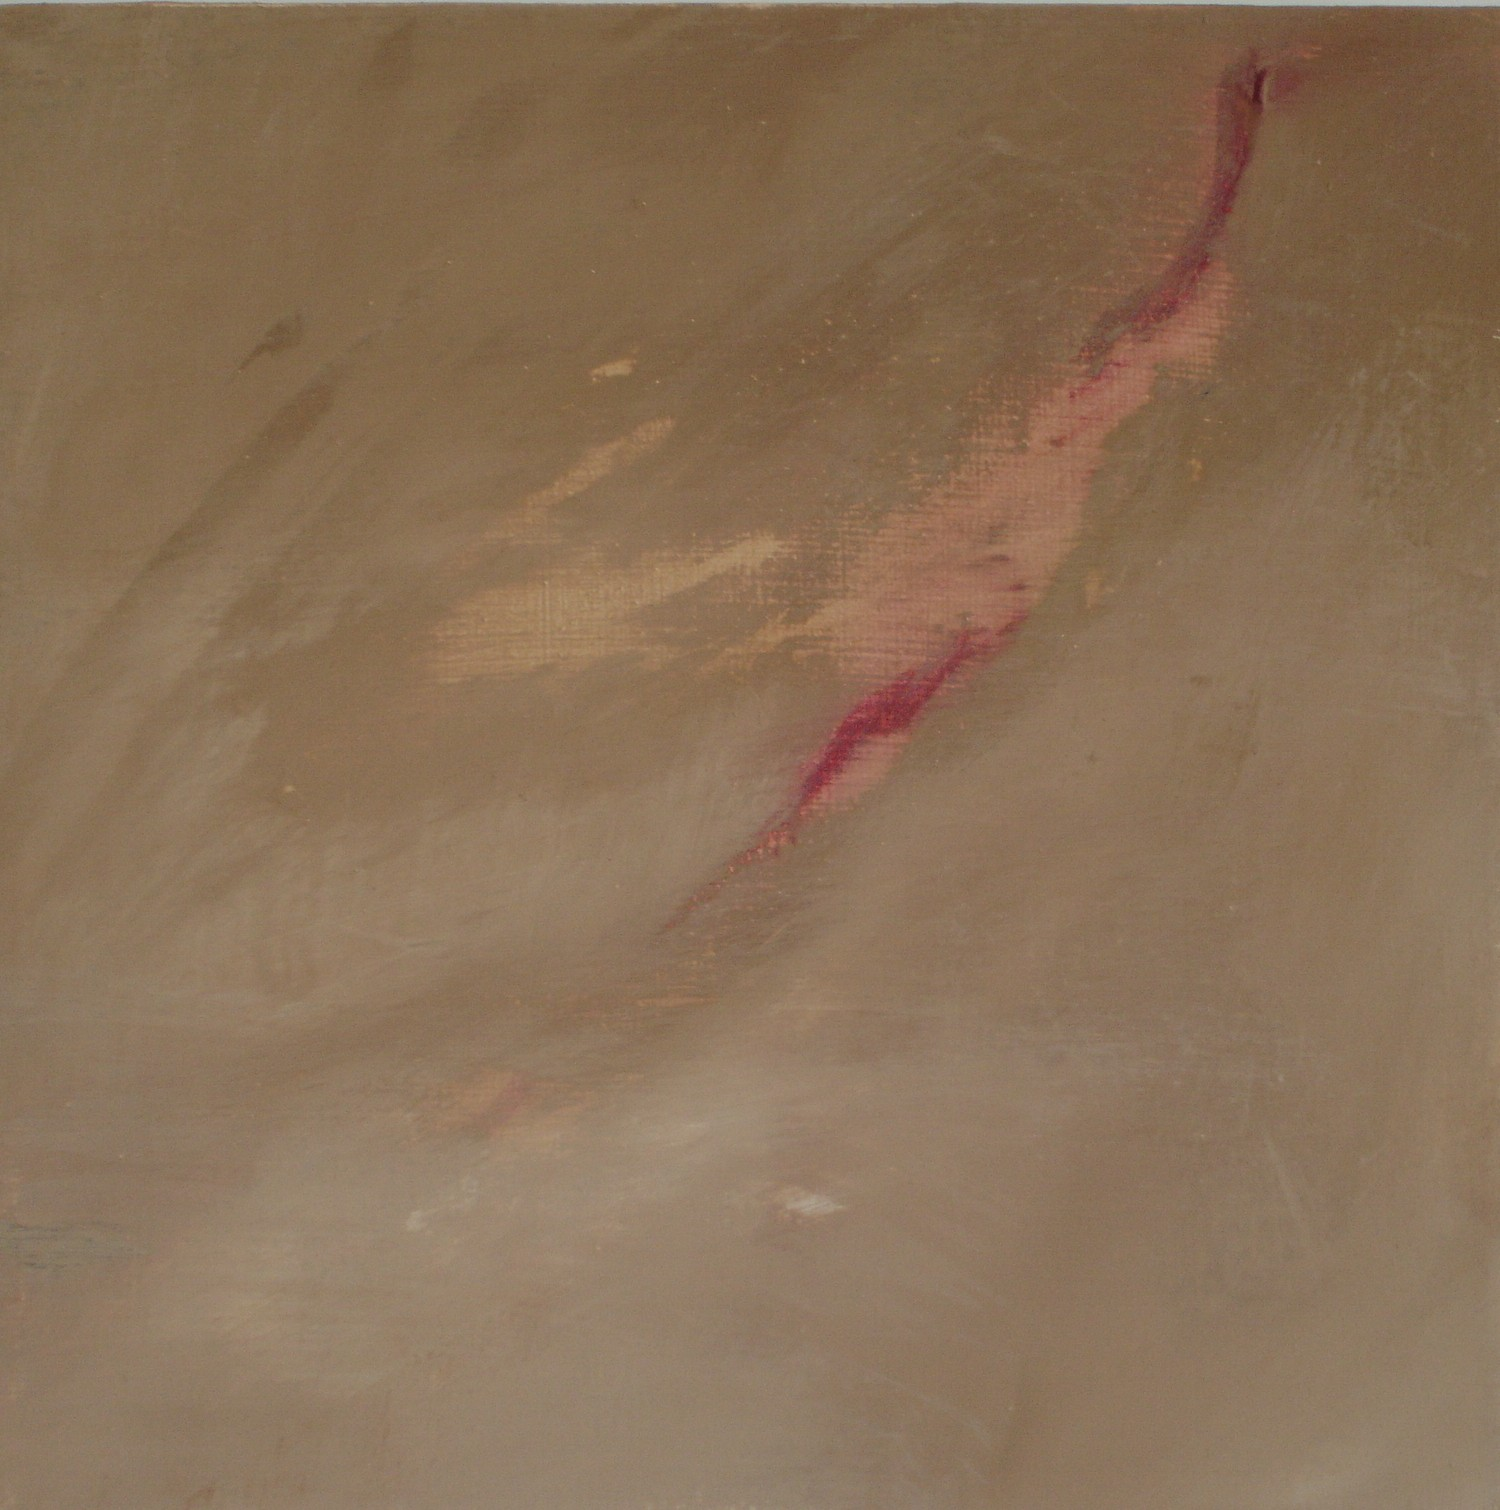 Scar, Footprint, Tramyard Gallery, oil on canvas, 2008